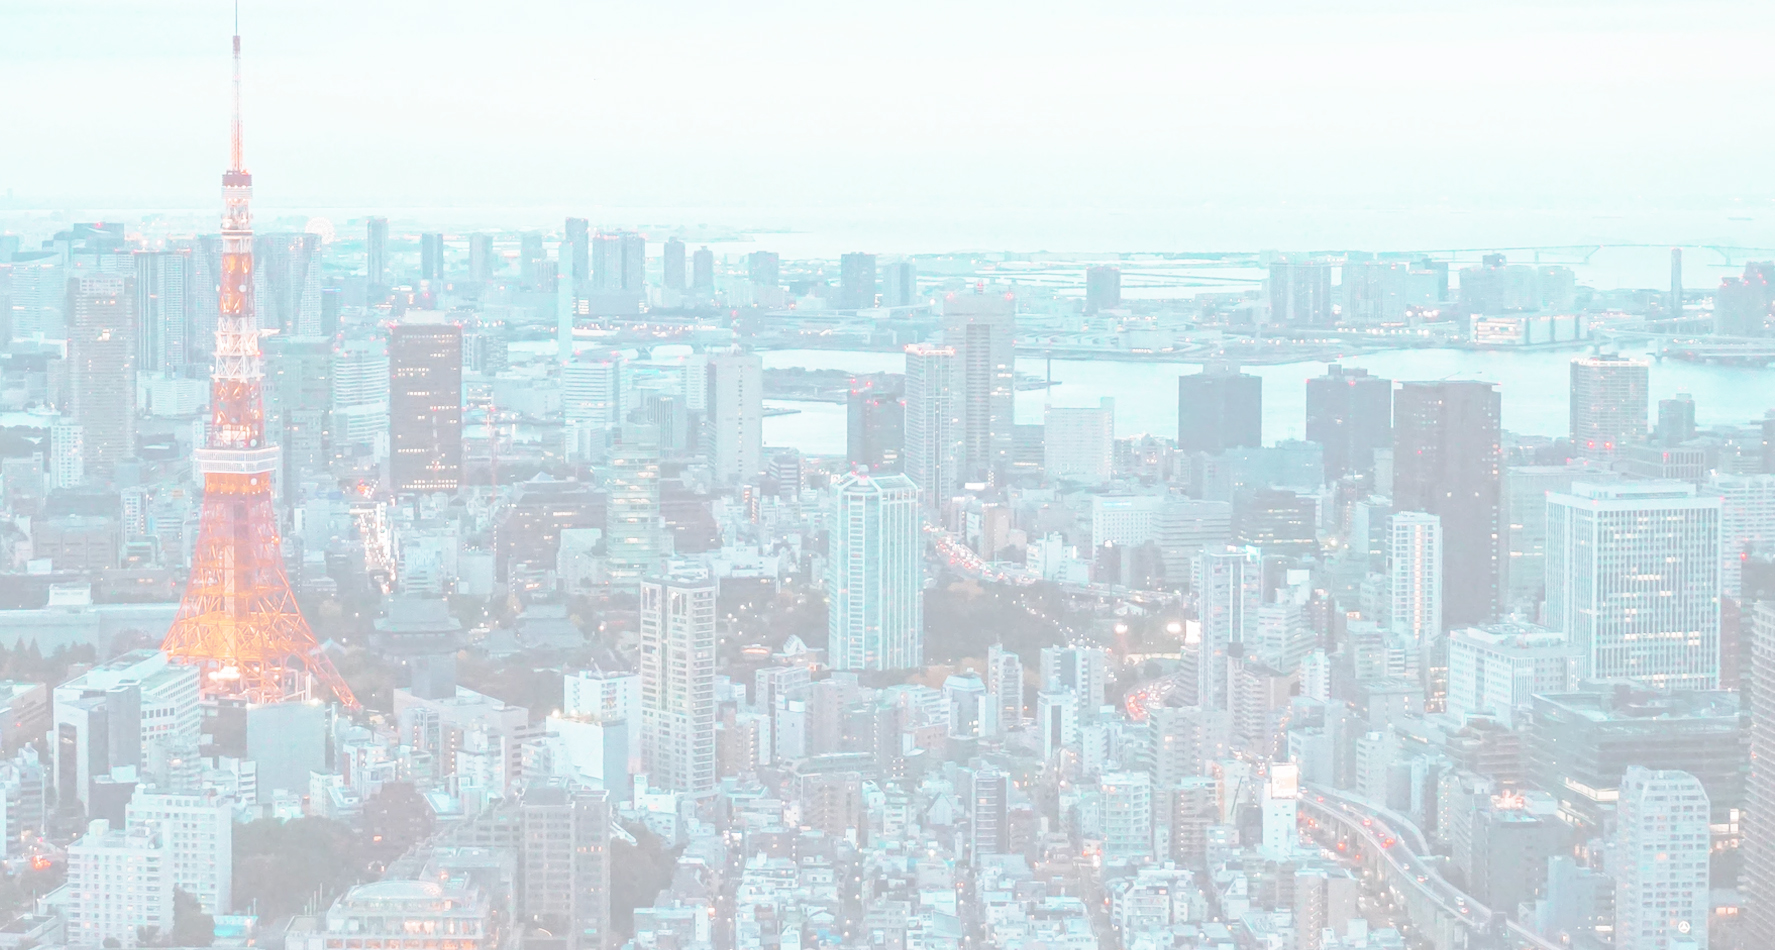 A faded out photo of Tokyo showing skyscrapers, a highway, a river and many other buildings.